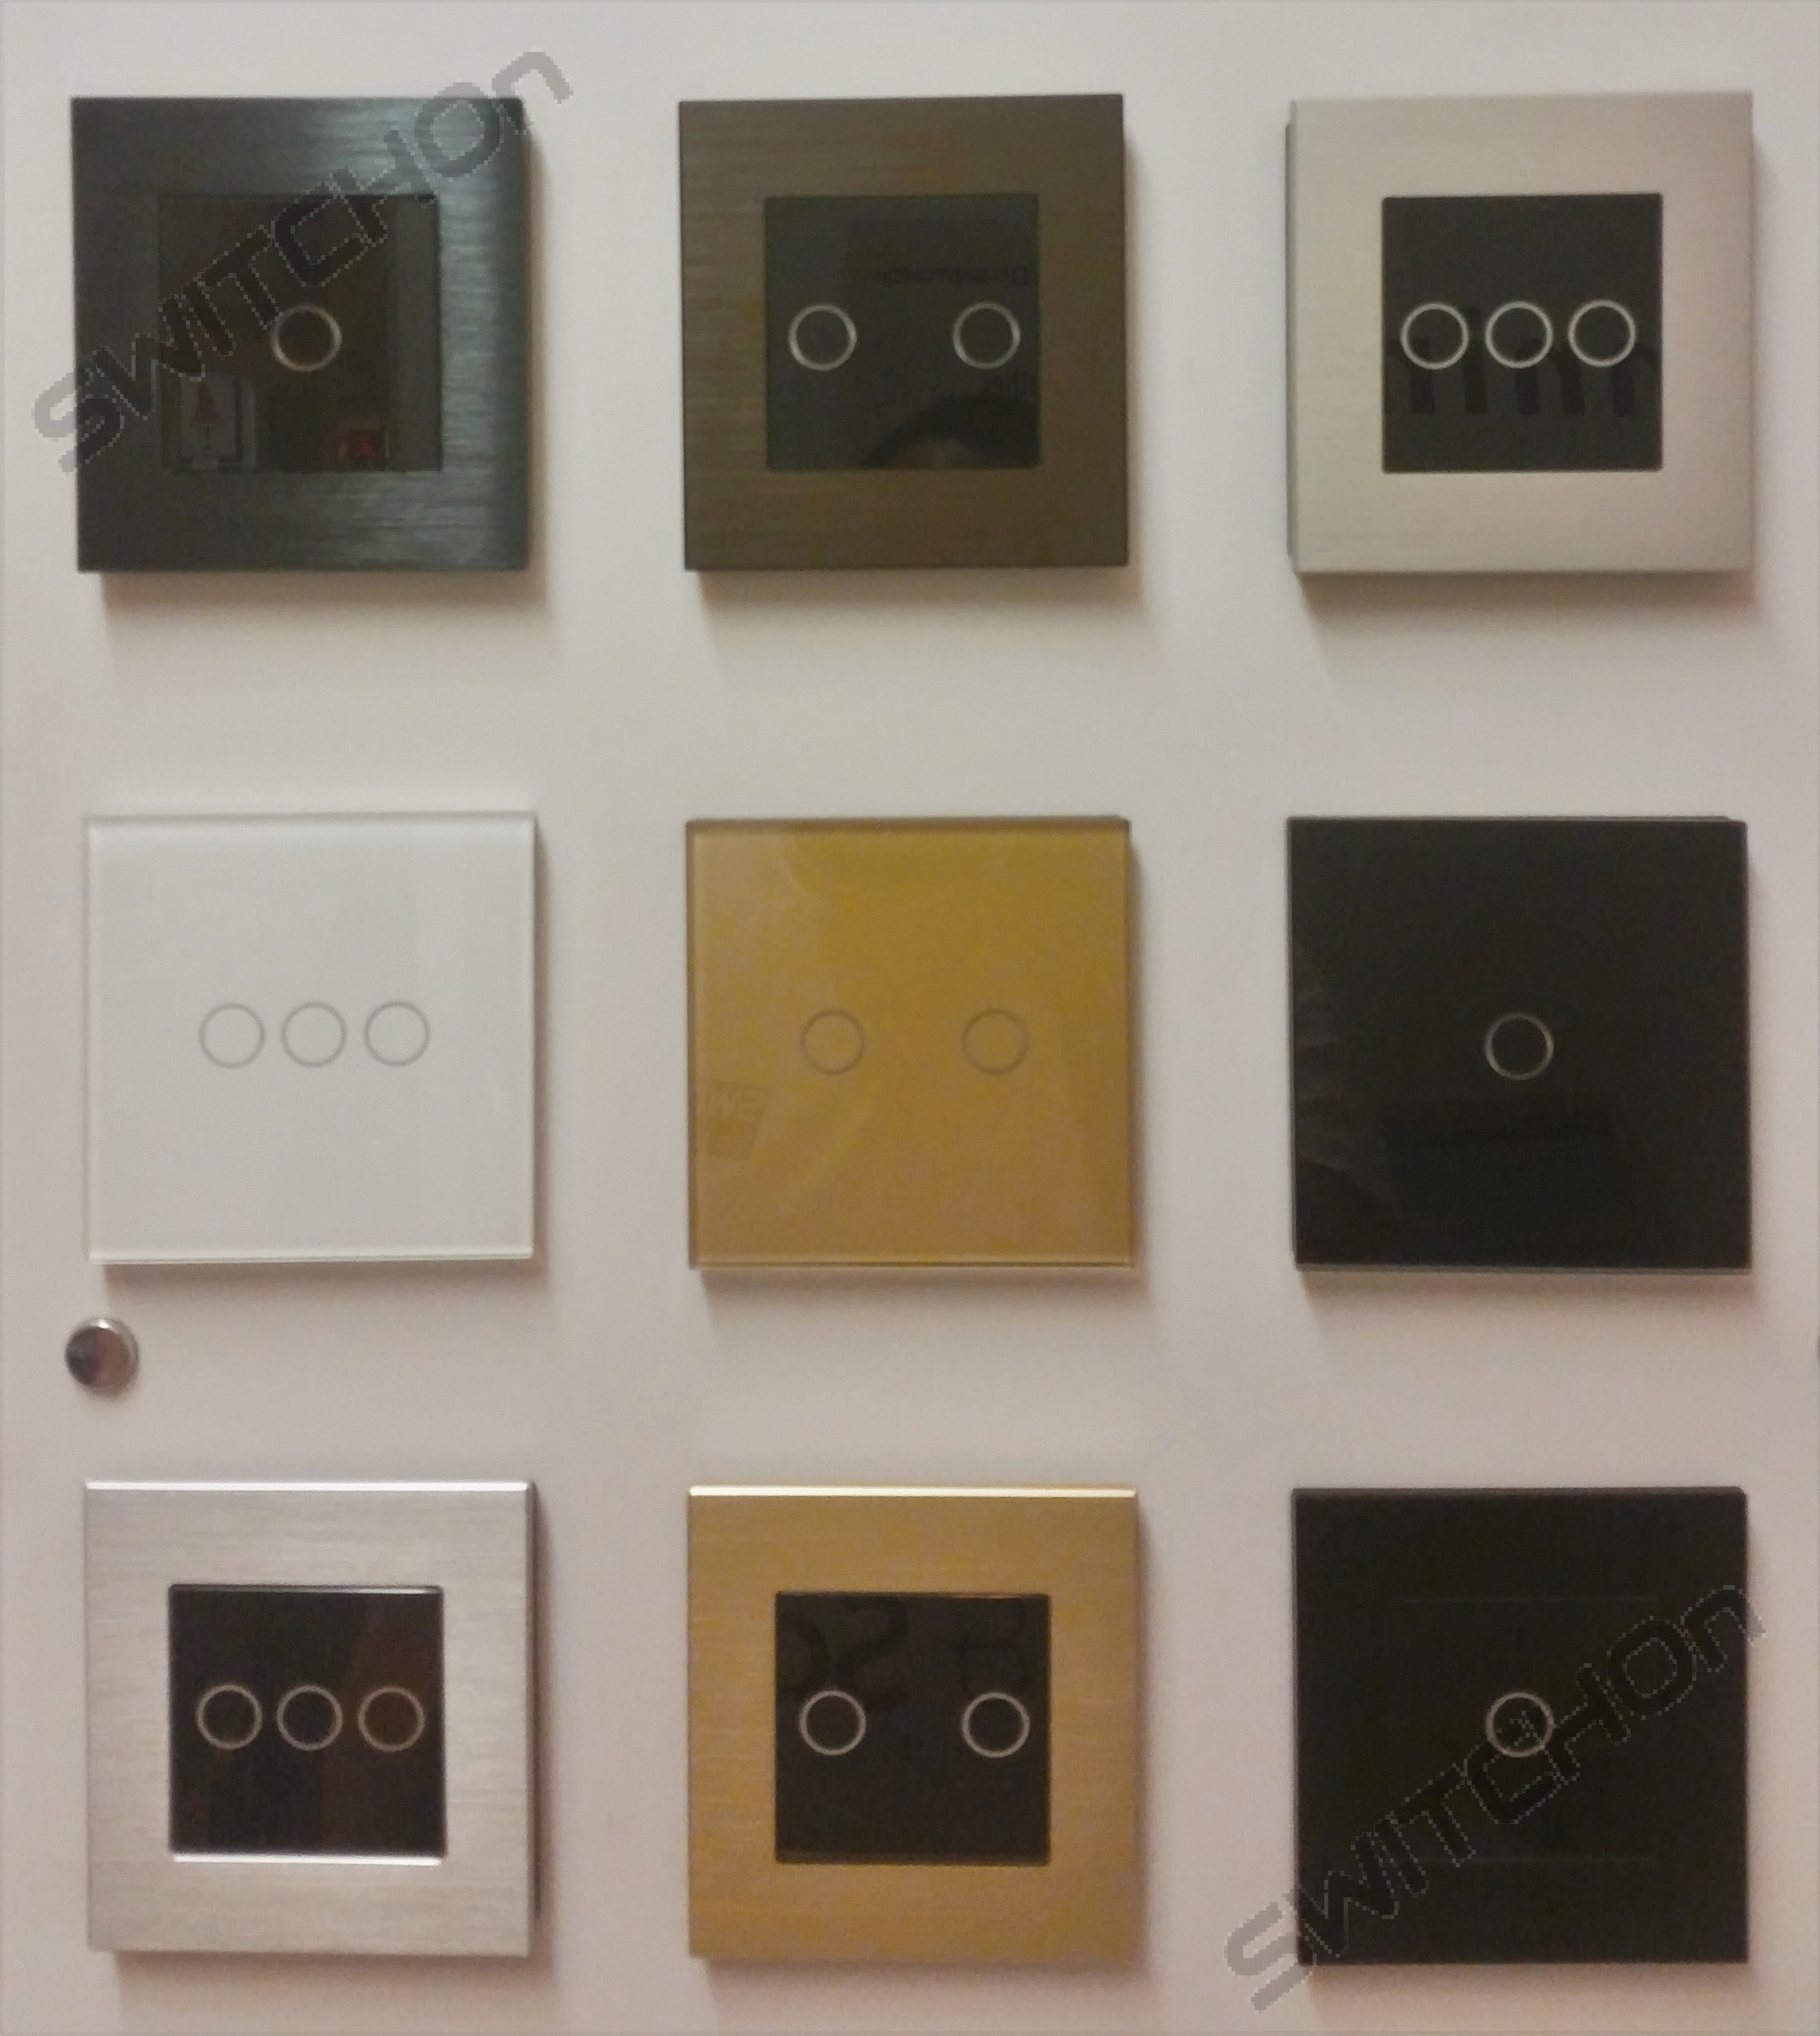 Touch Dimmers in various colours and finishes